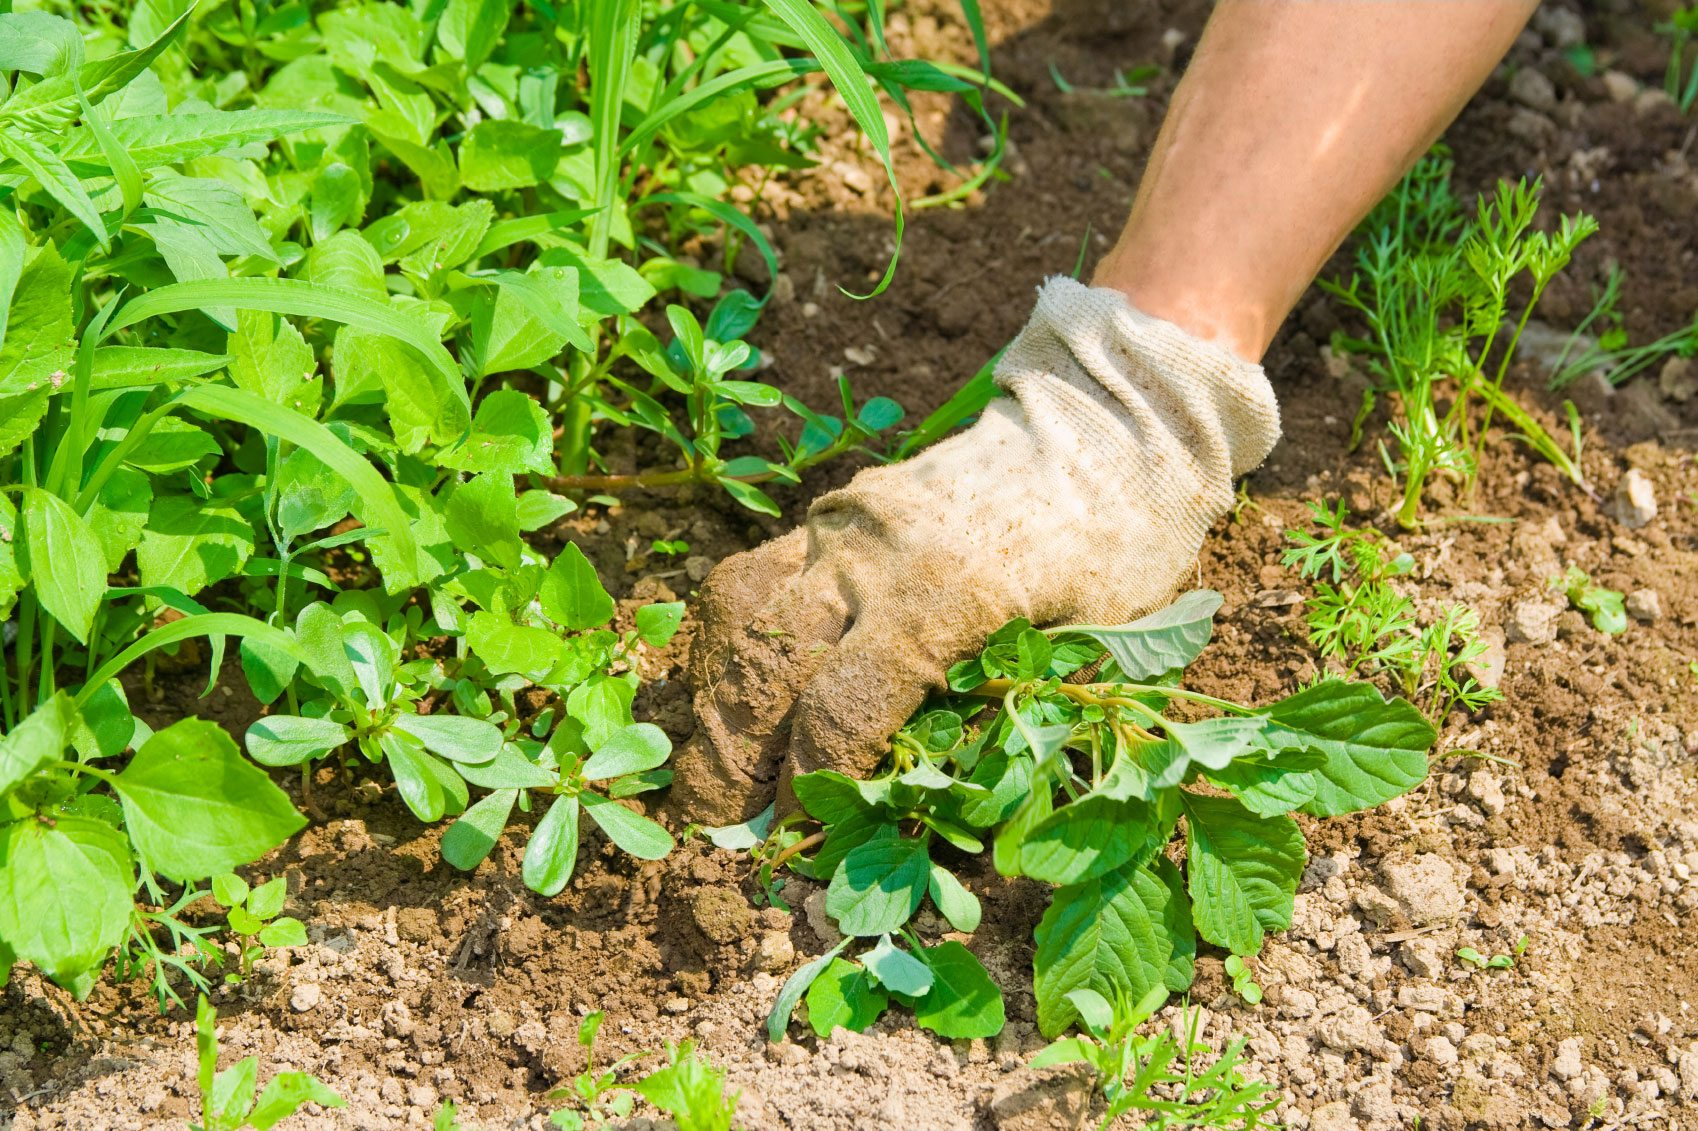 Vegetable Weed Control: How To Keep Weeds Out Of A Vegetable Garden